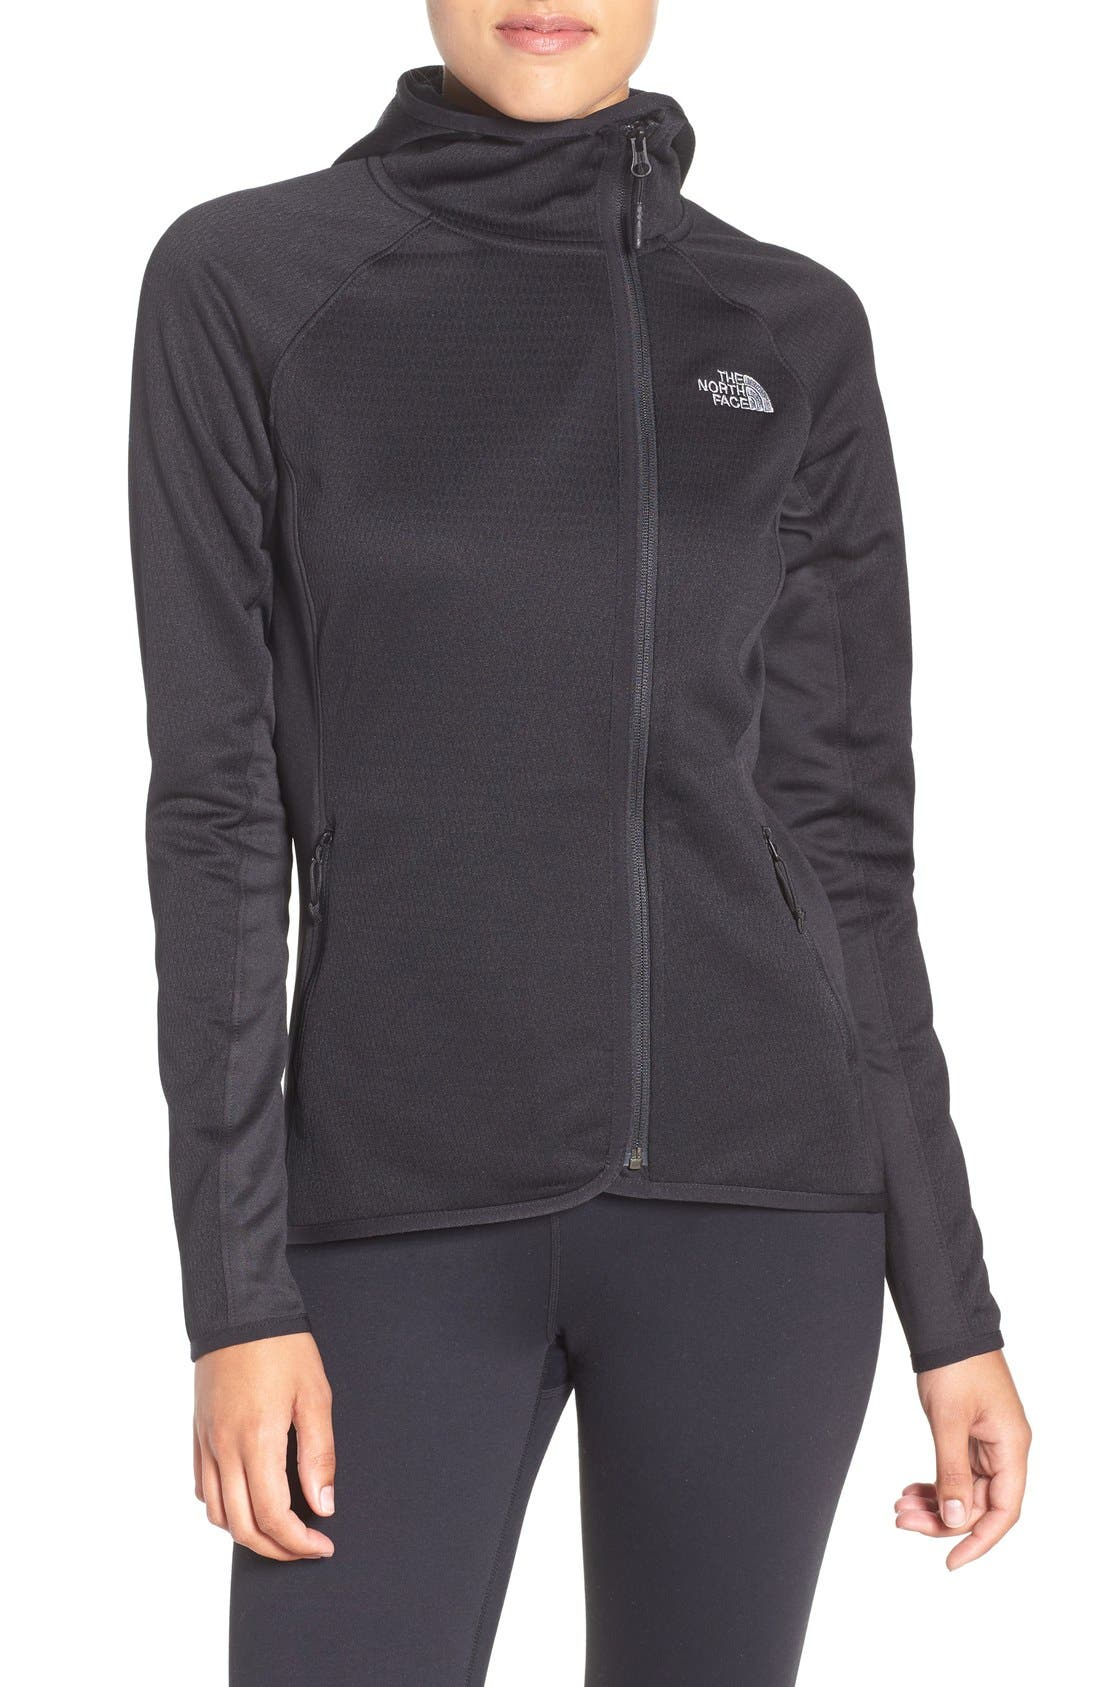 The North Face 'Arcata' Water Resistant Jacket